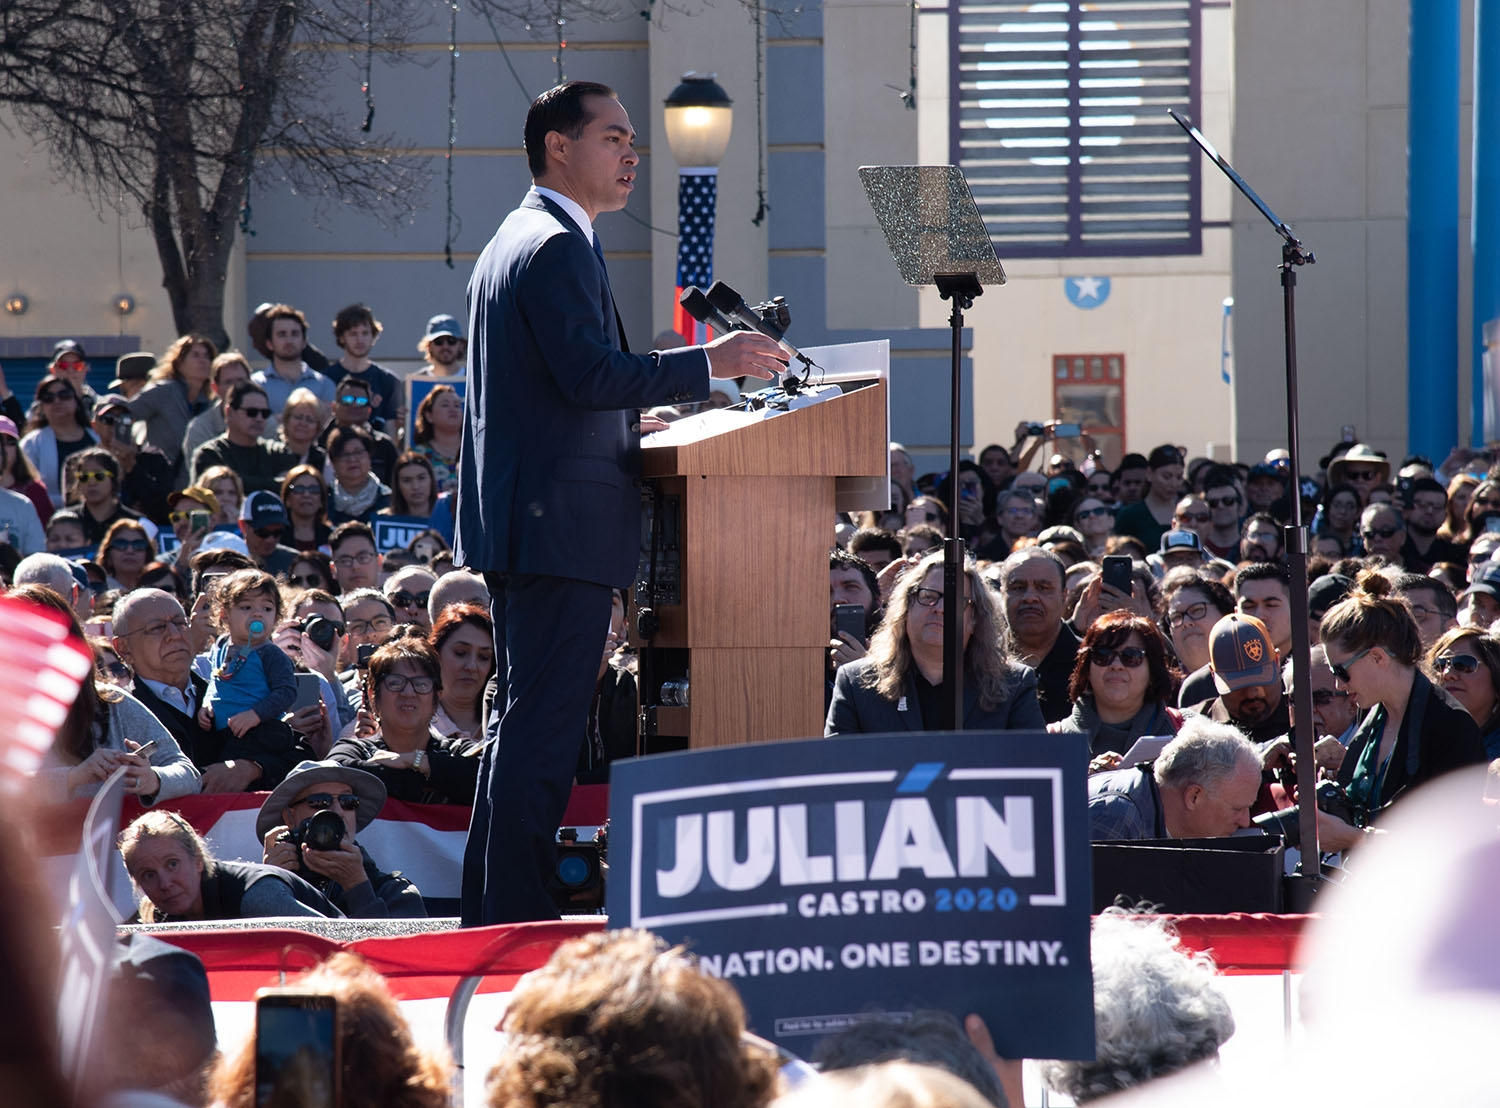 Julián Castro announces his candidacy in the 2020 presidential election Jan. 12 at Plaza Guadalupe. Photo: V. Finster | Heron contributor